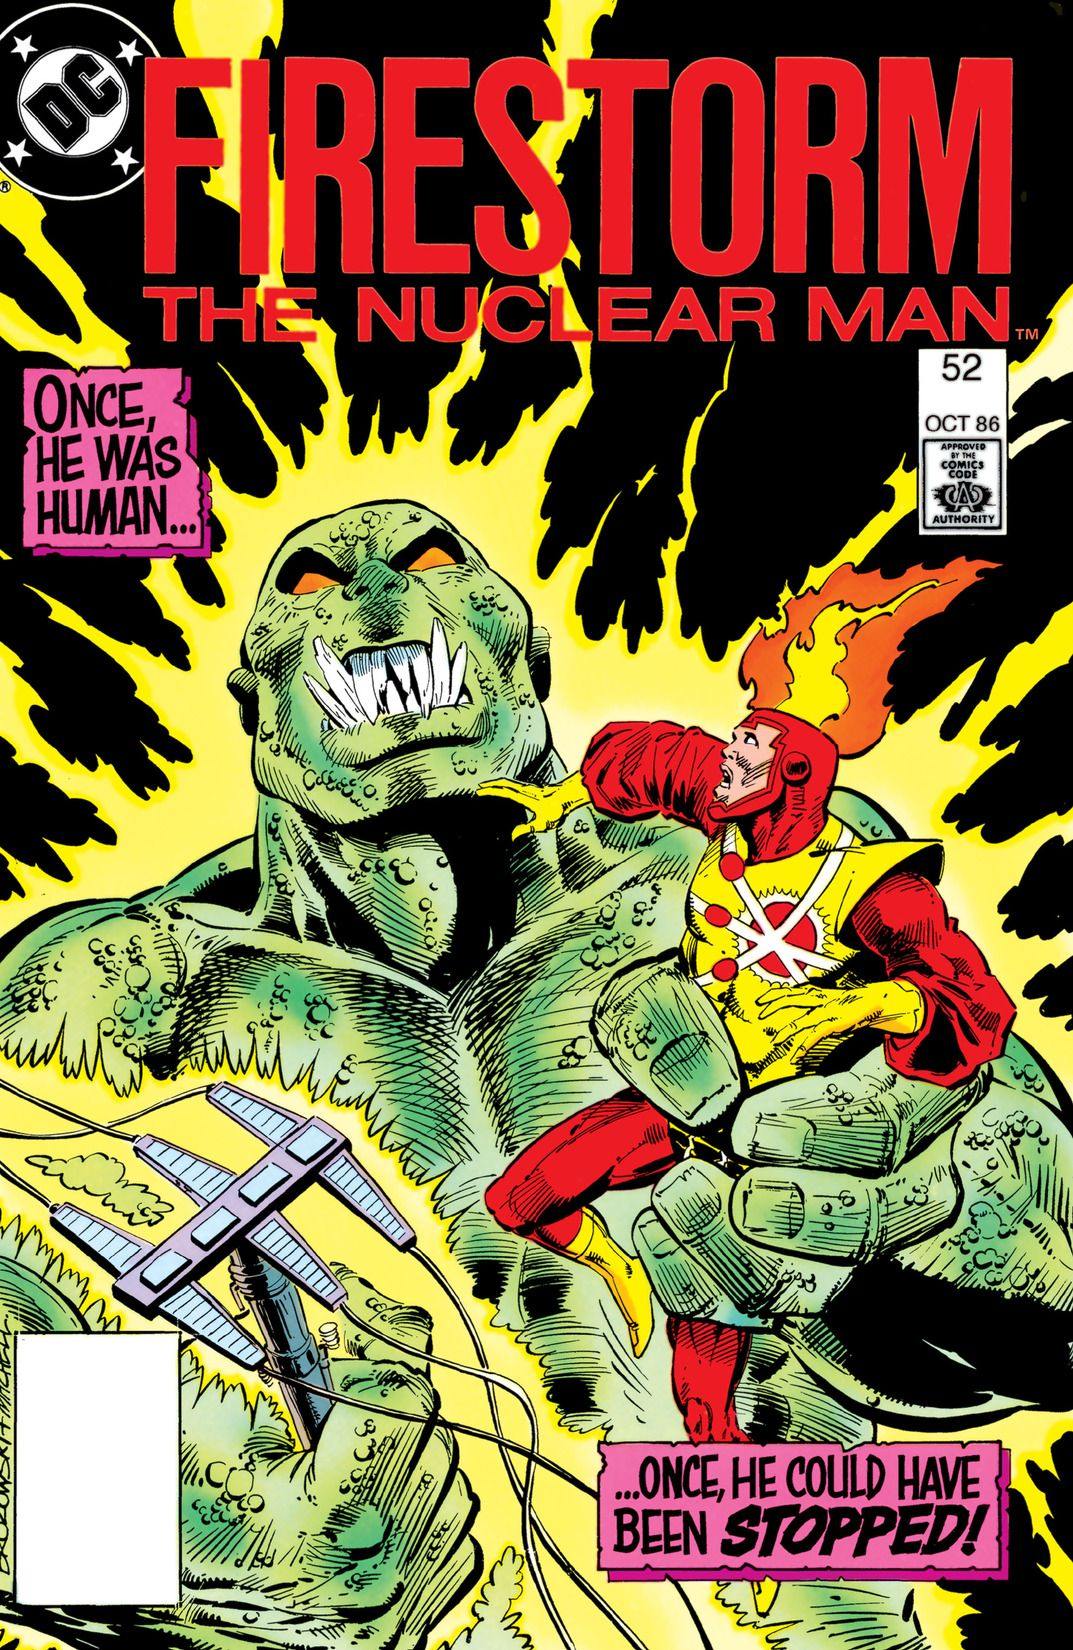 Fury of Firestorm #52 by Gerry Conway, Joe Brozowski and Steve Mitchell; cover by Joe Brozowski and Steve Mitchell